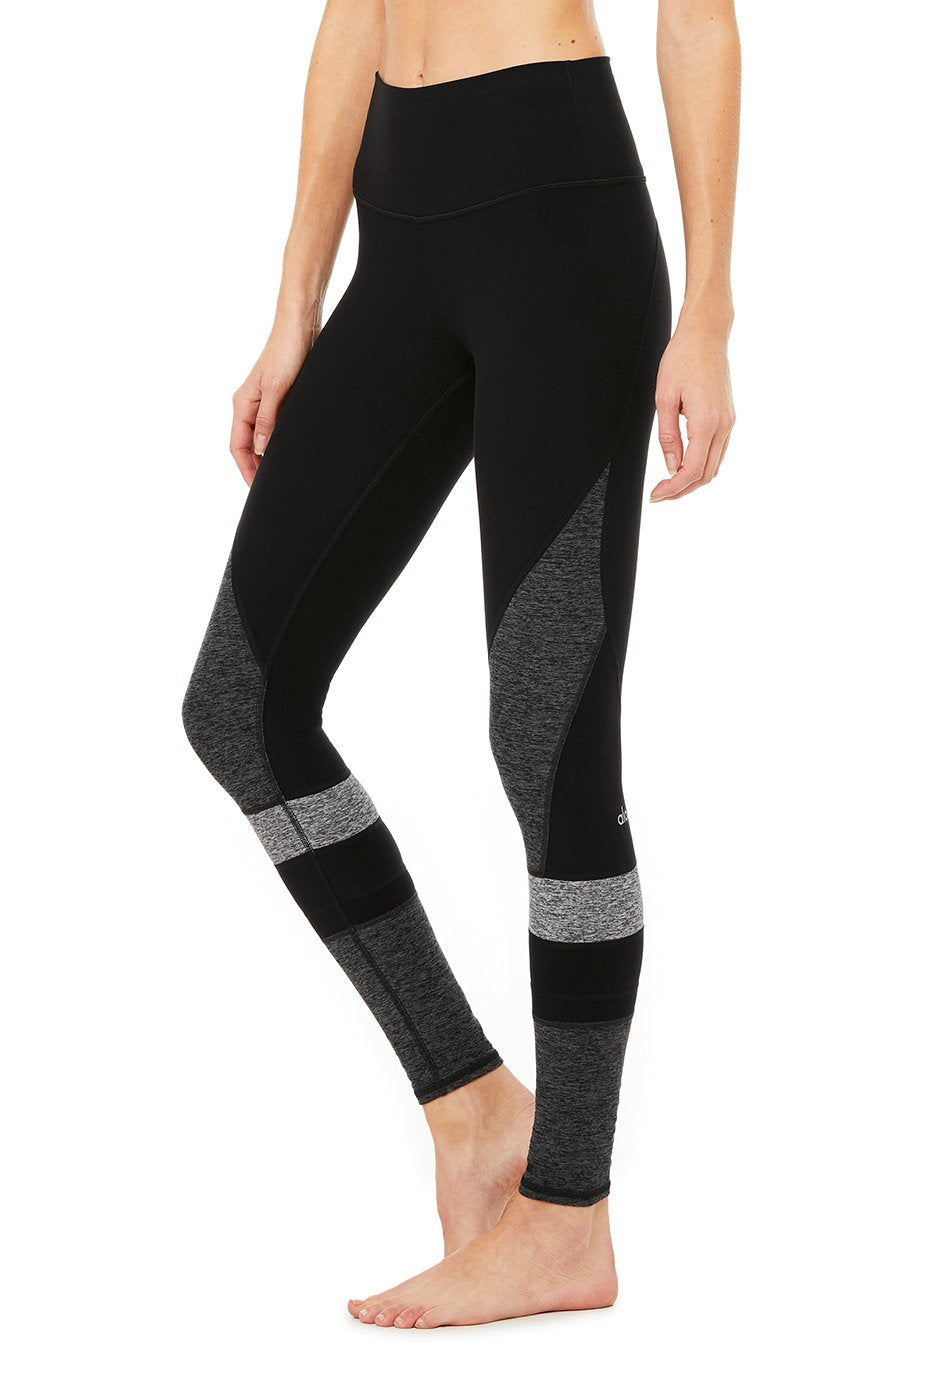 High Waist Alo soft Momentum Legging- Black/Grey